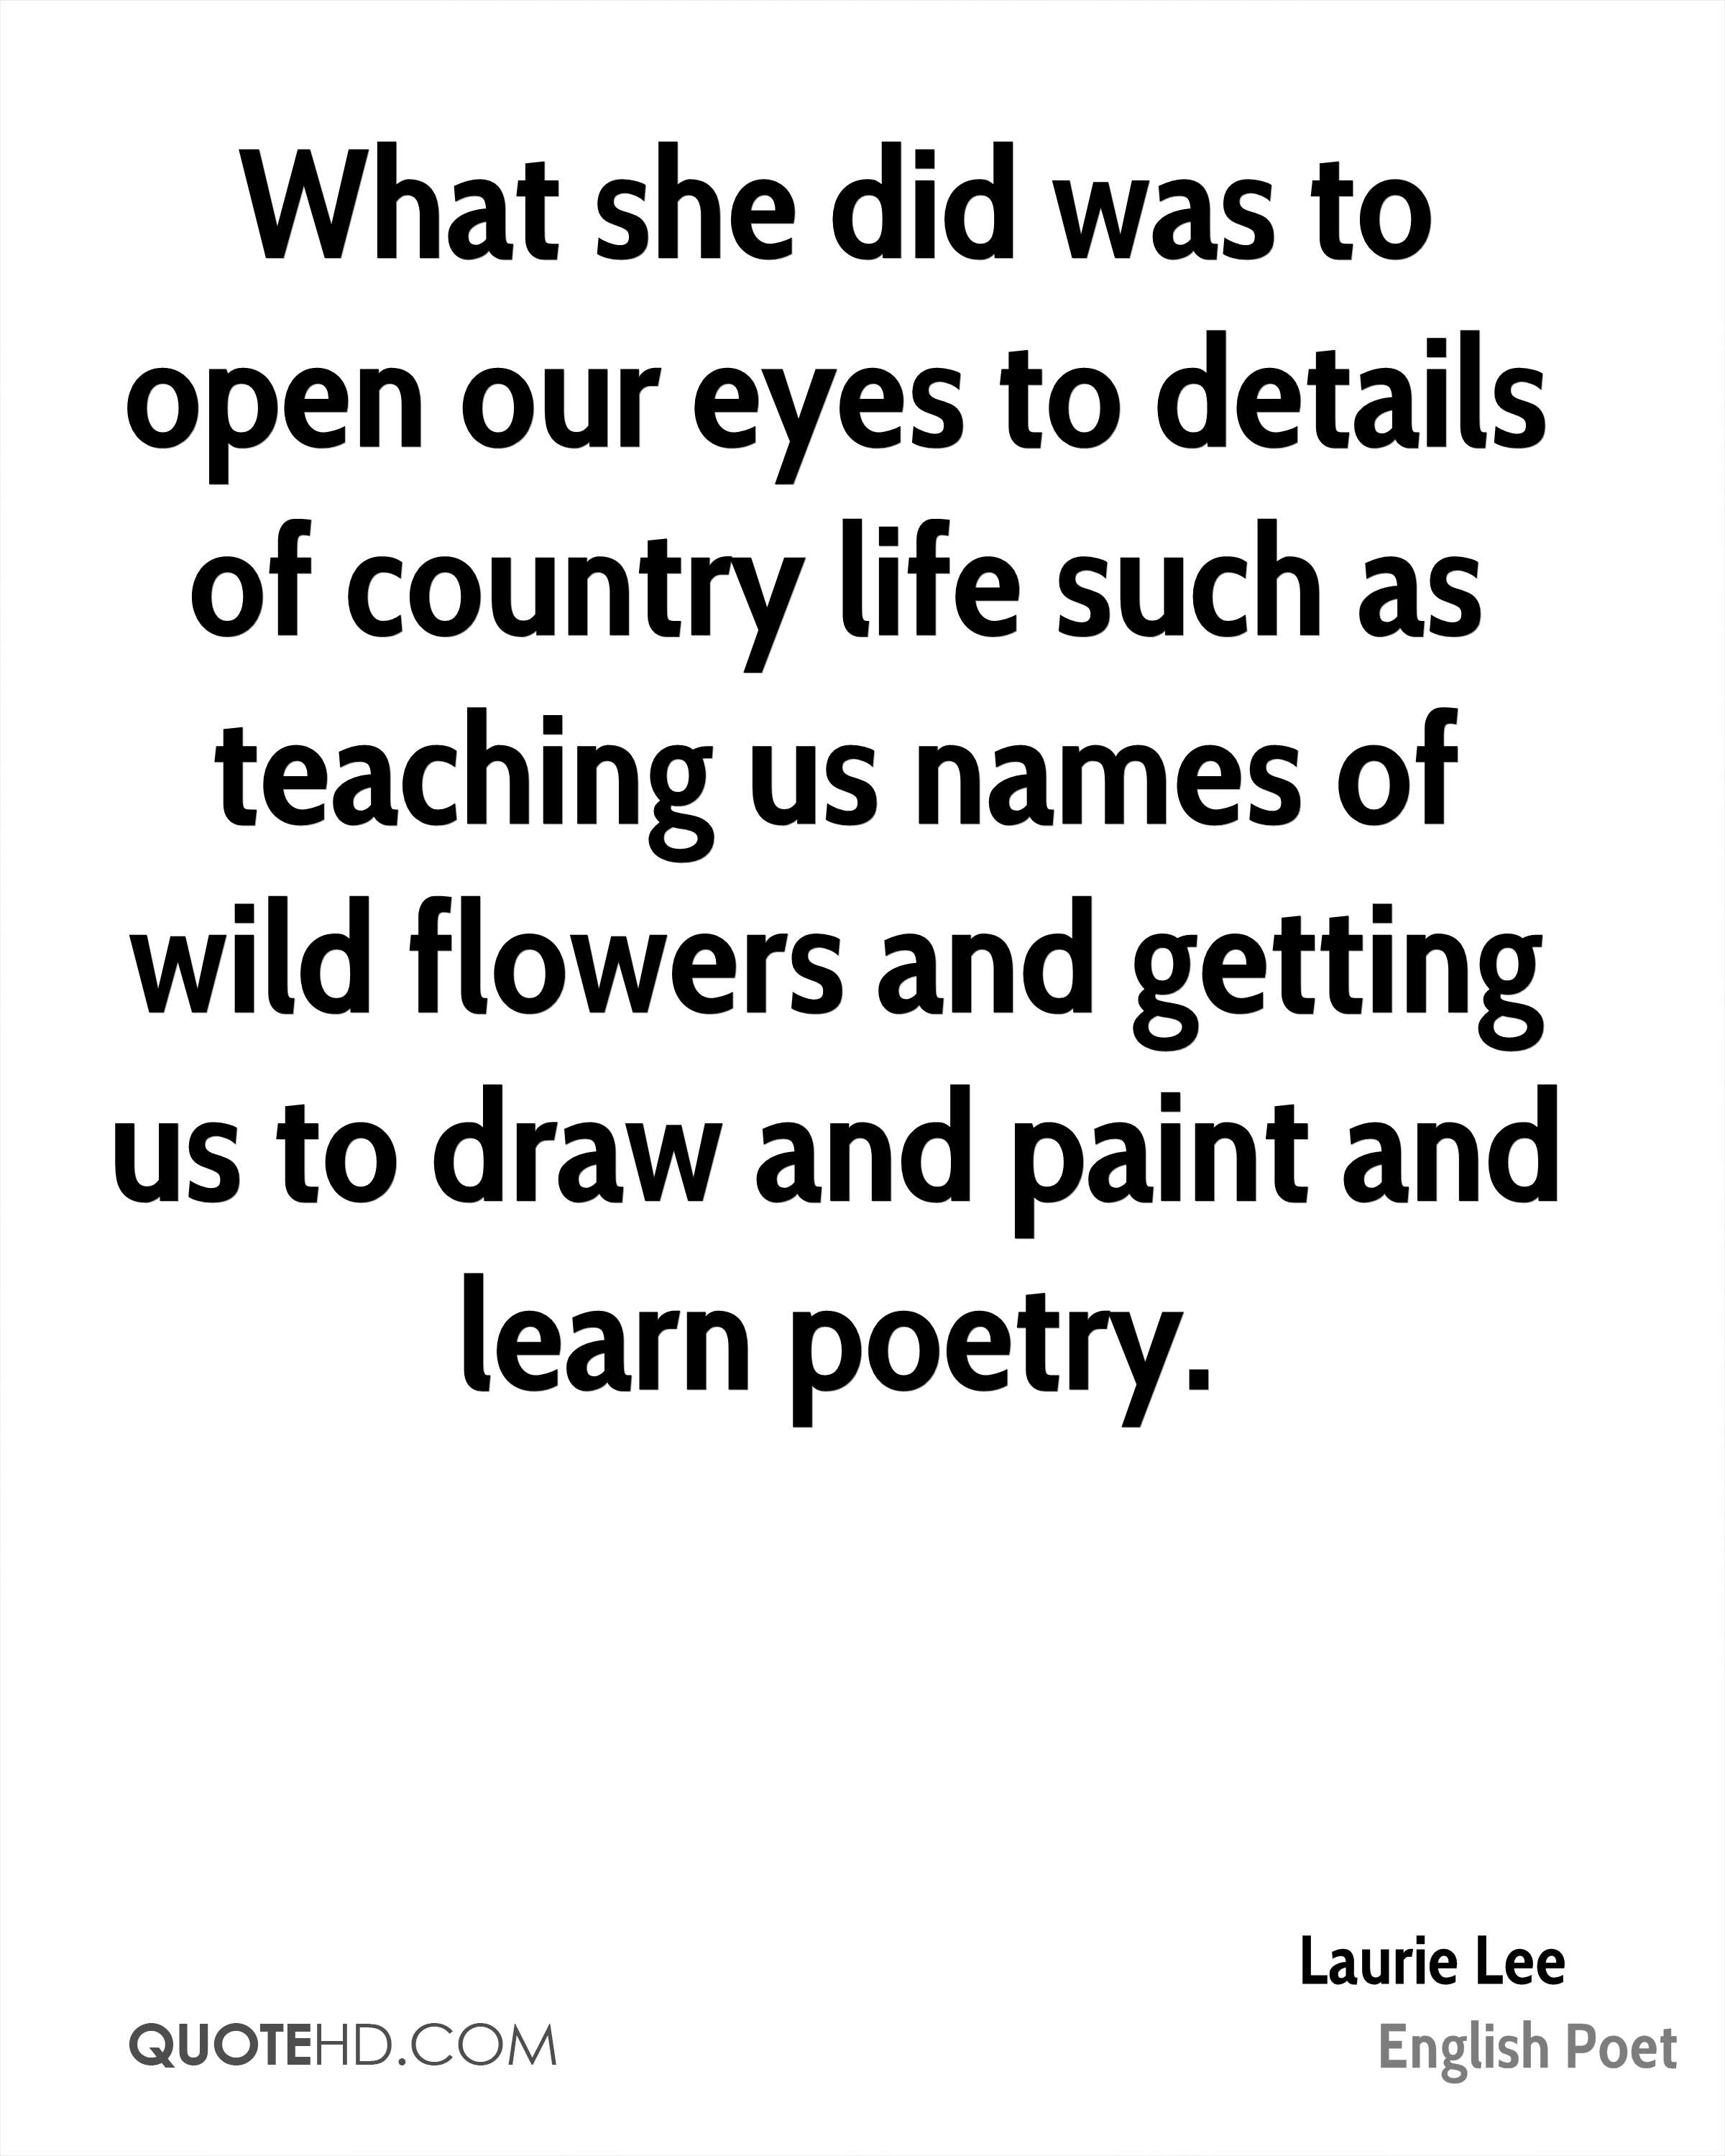 What she did was to open our eyes to details of country life such as teaching us names of wild flowers and getting us to draw and paint and learn poetry.